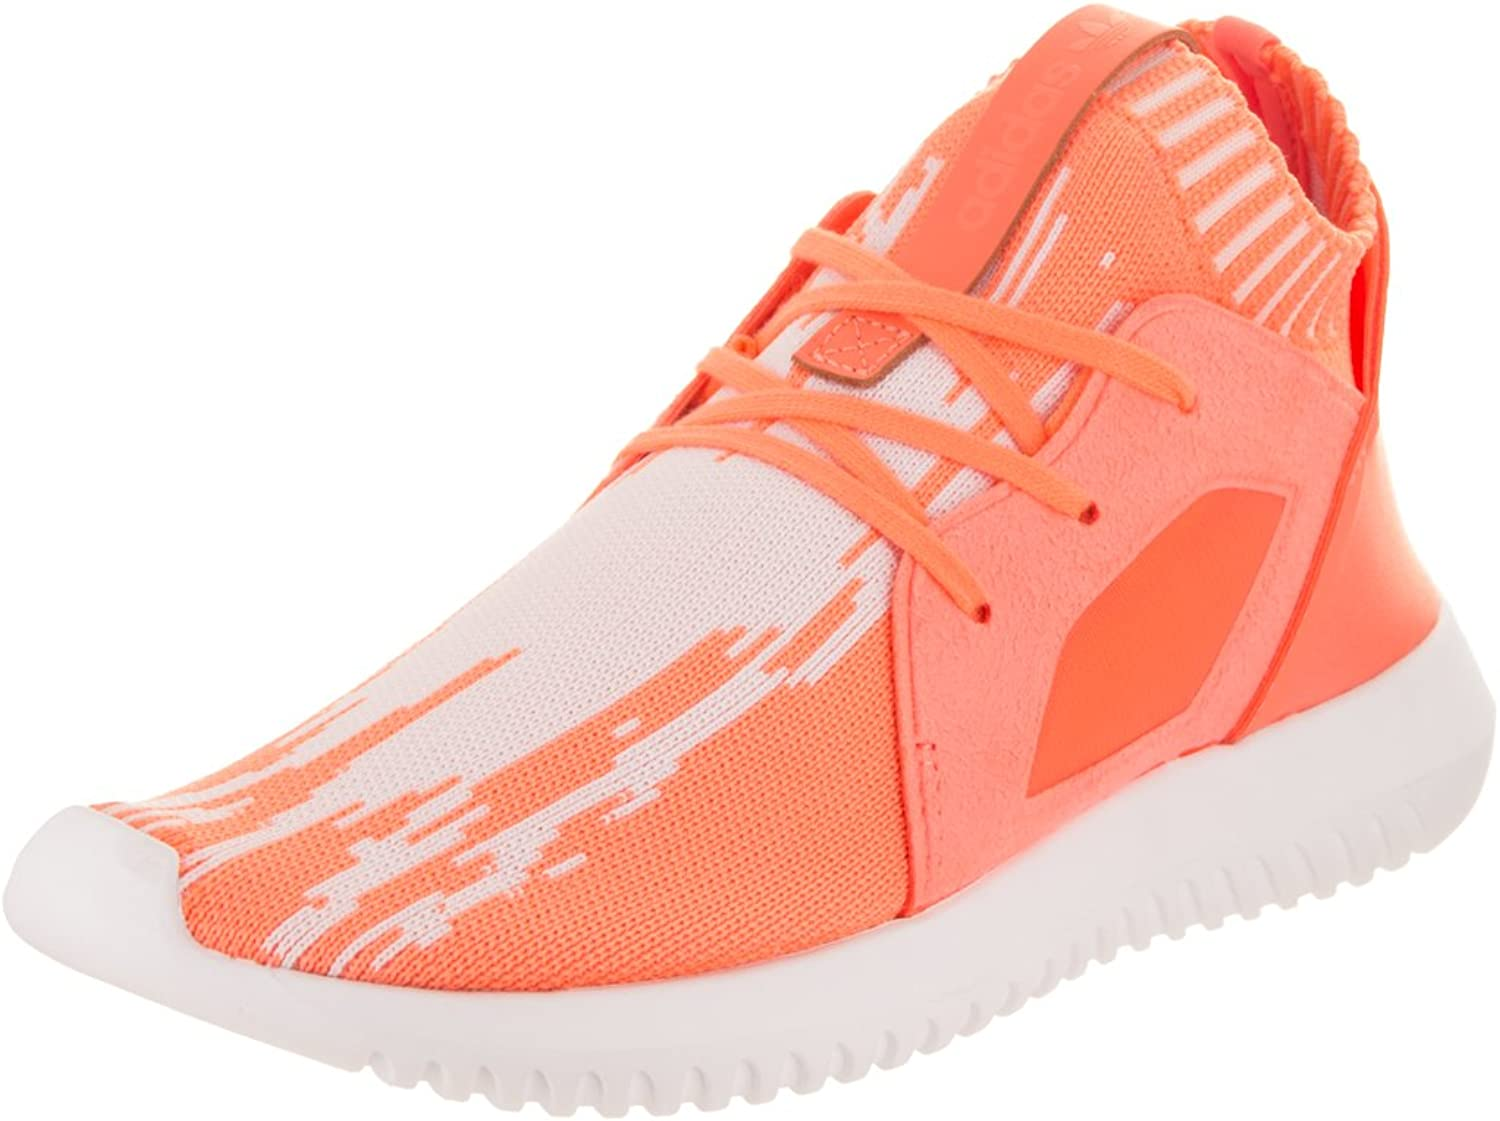 Adidas Women's Tubular Defiant PK Originals Running shoes